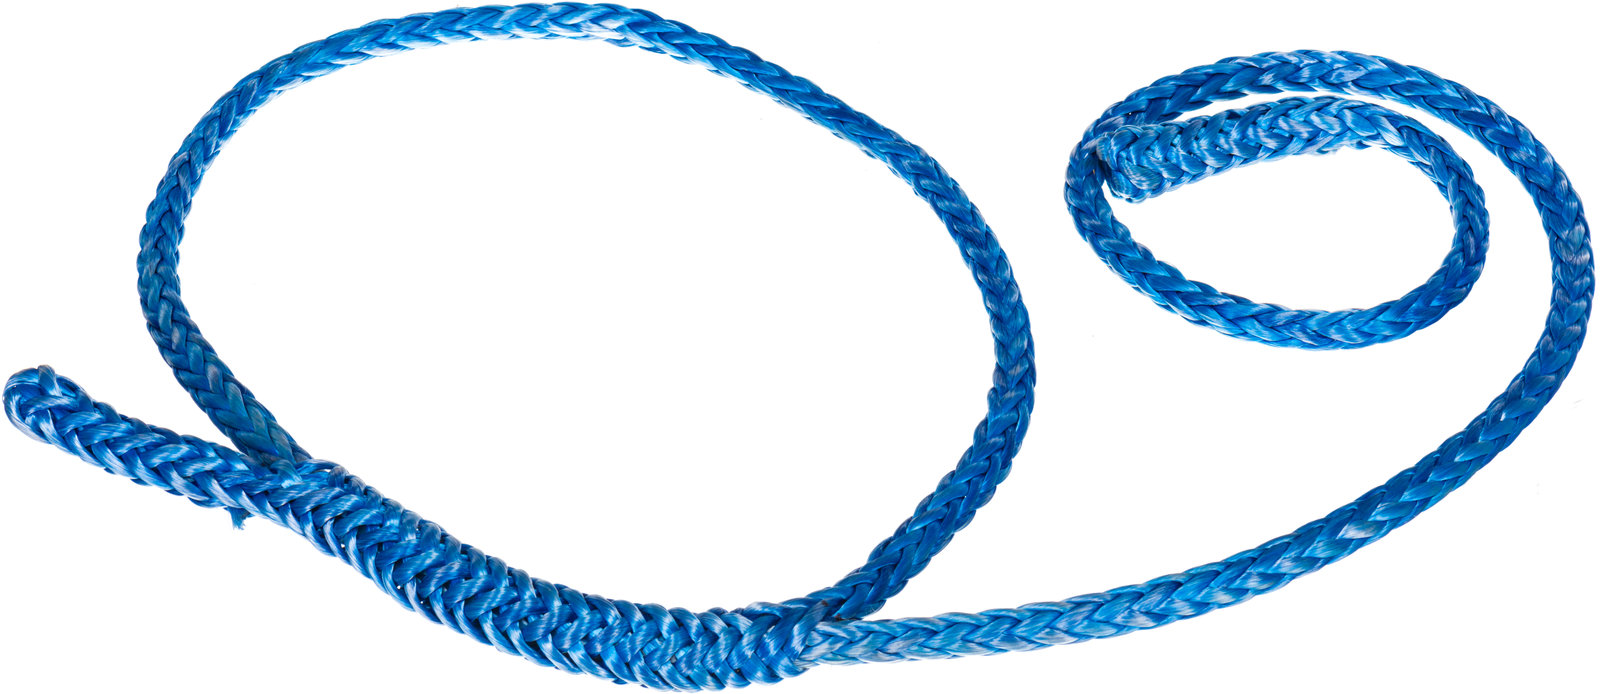 HMPE 12 Strand Loopie Slings